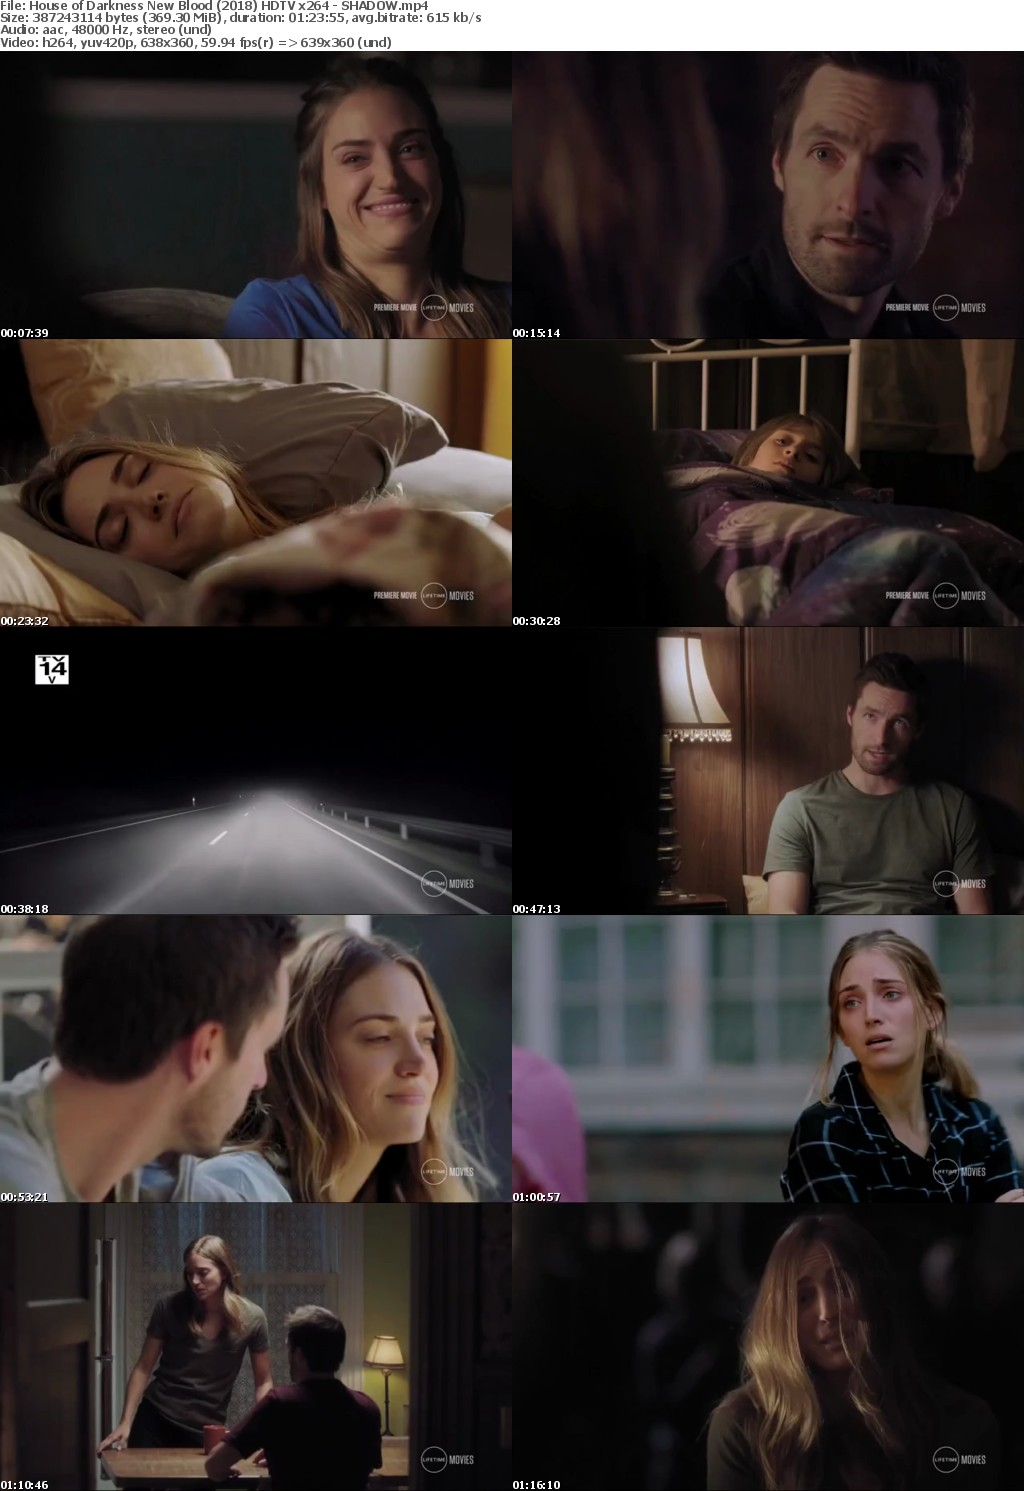 House of Darkness New Blood (2018) HDTV x264 - SHADOW